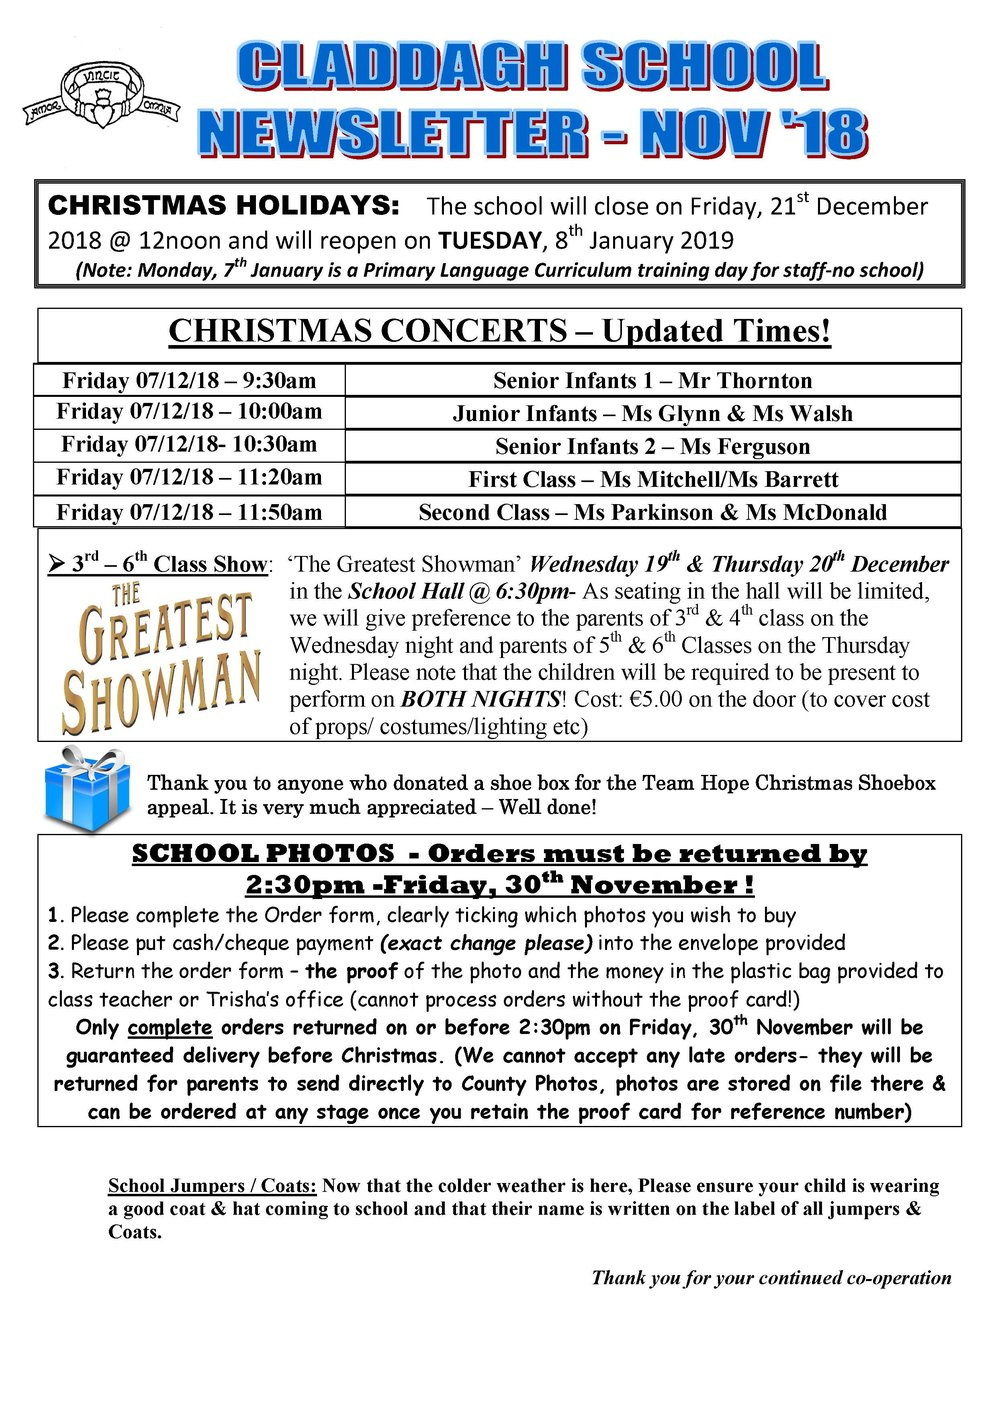 CladdaghNS_Newsletter_December_2018.jpg